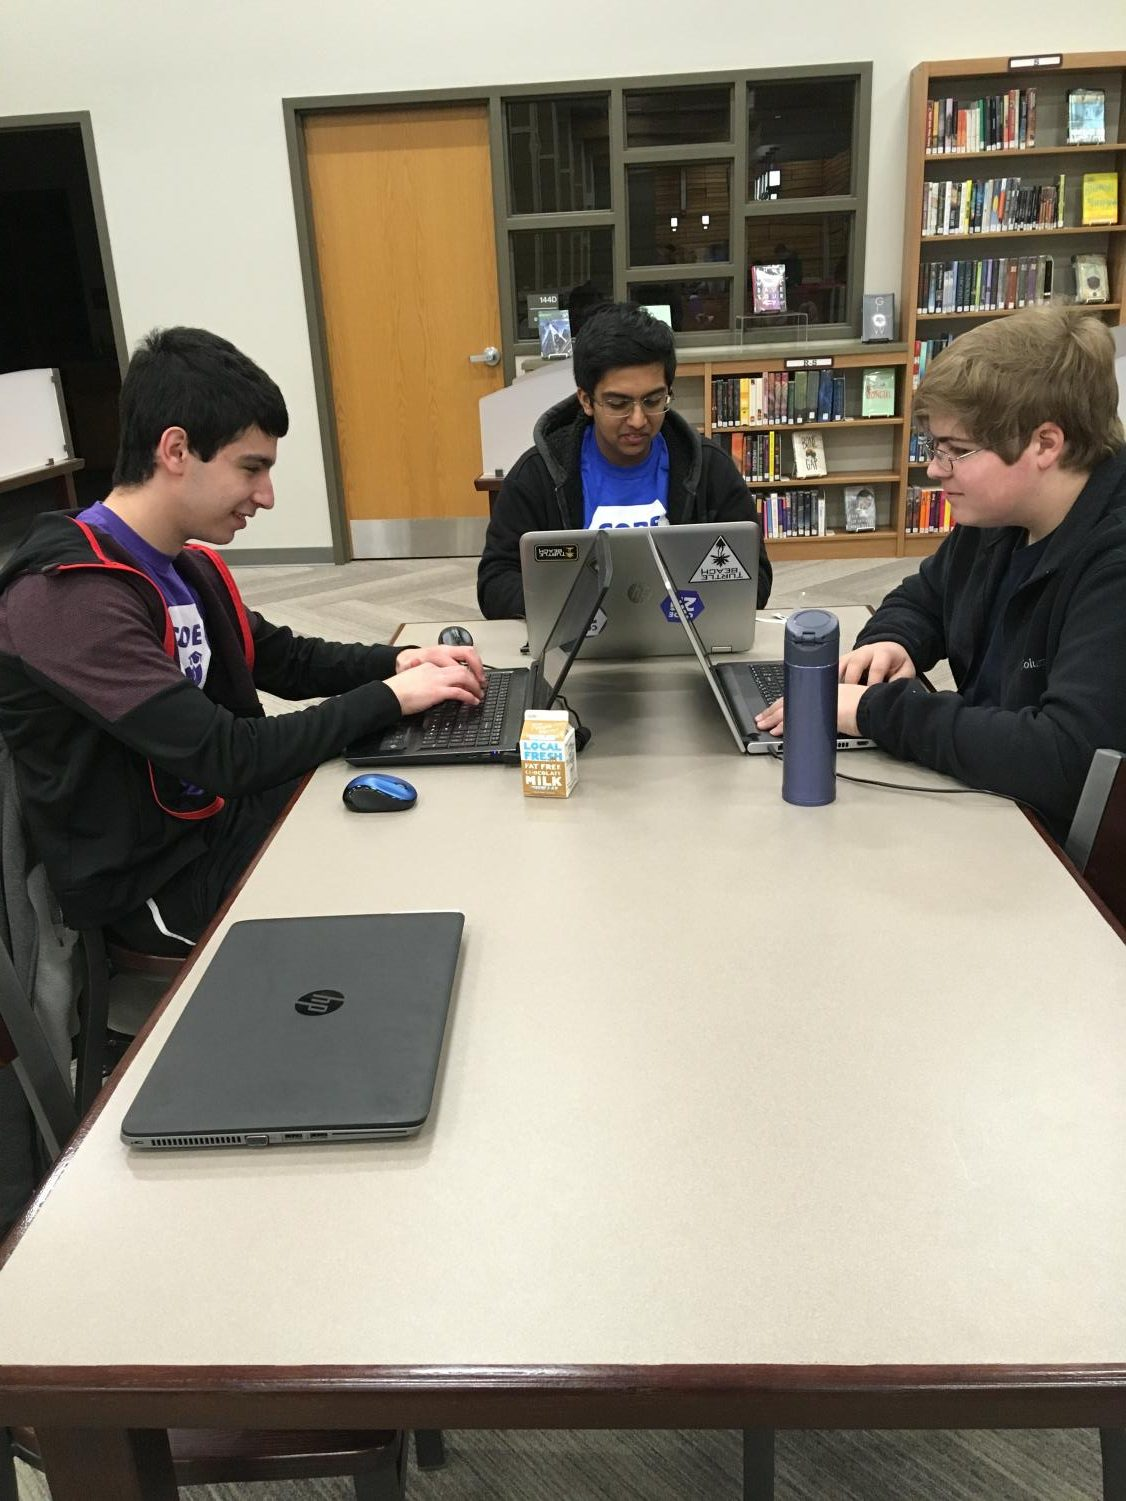 Brody Adelman, Pranay Singh, and Gavin Andres code in the Fremd Media Center during the Code211 Hackathon.